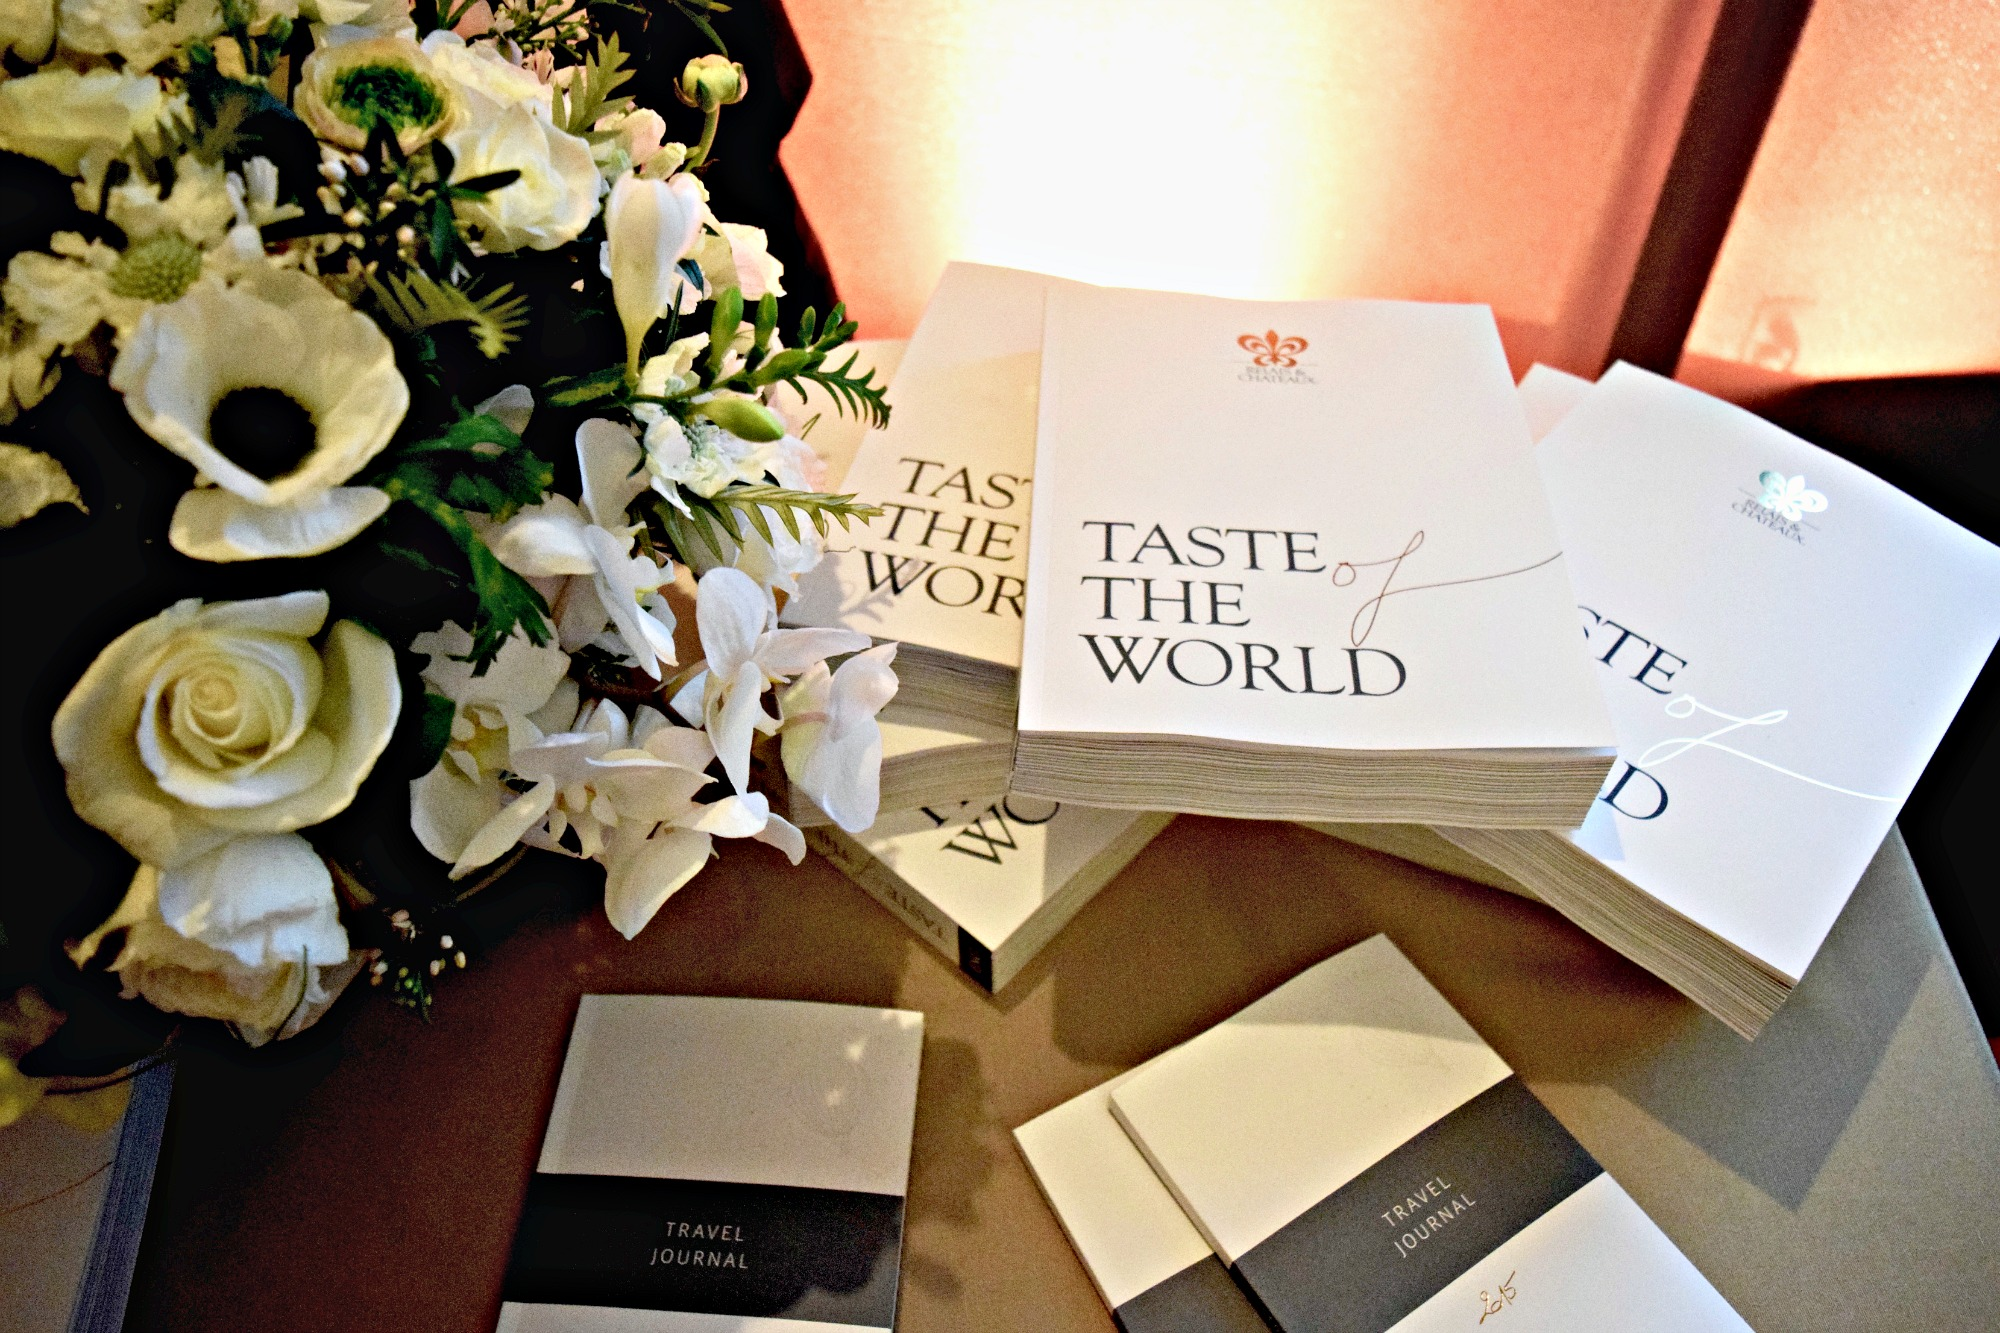 Relais Châteaux Taste of The World